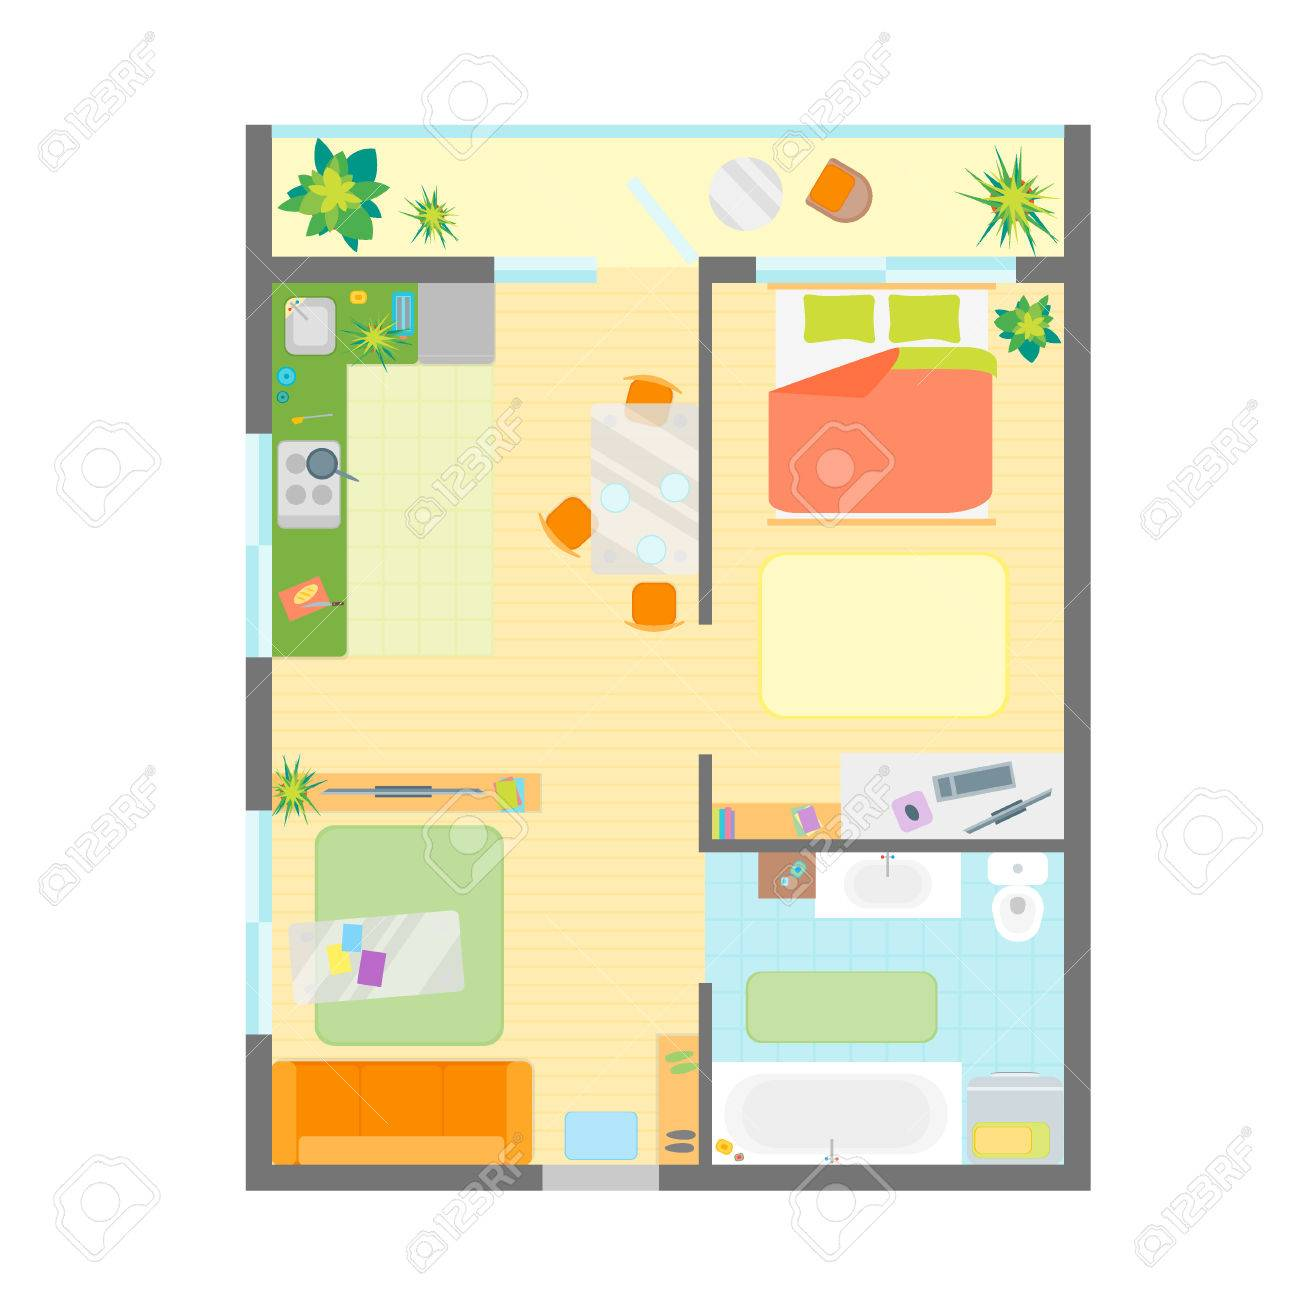 apartment floor plan with furniture top view engineering modern rh 123rf com free furniture clipart for floor plans